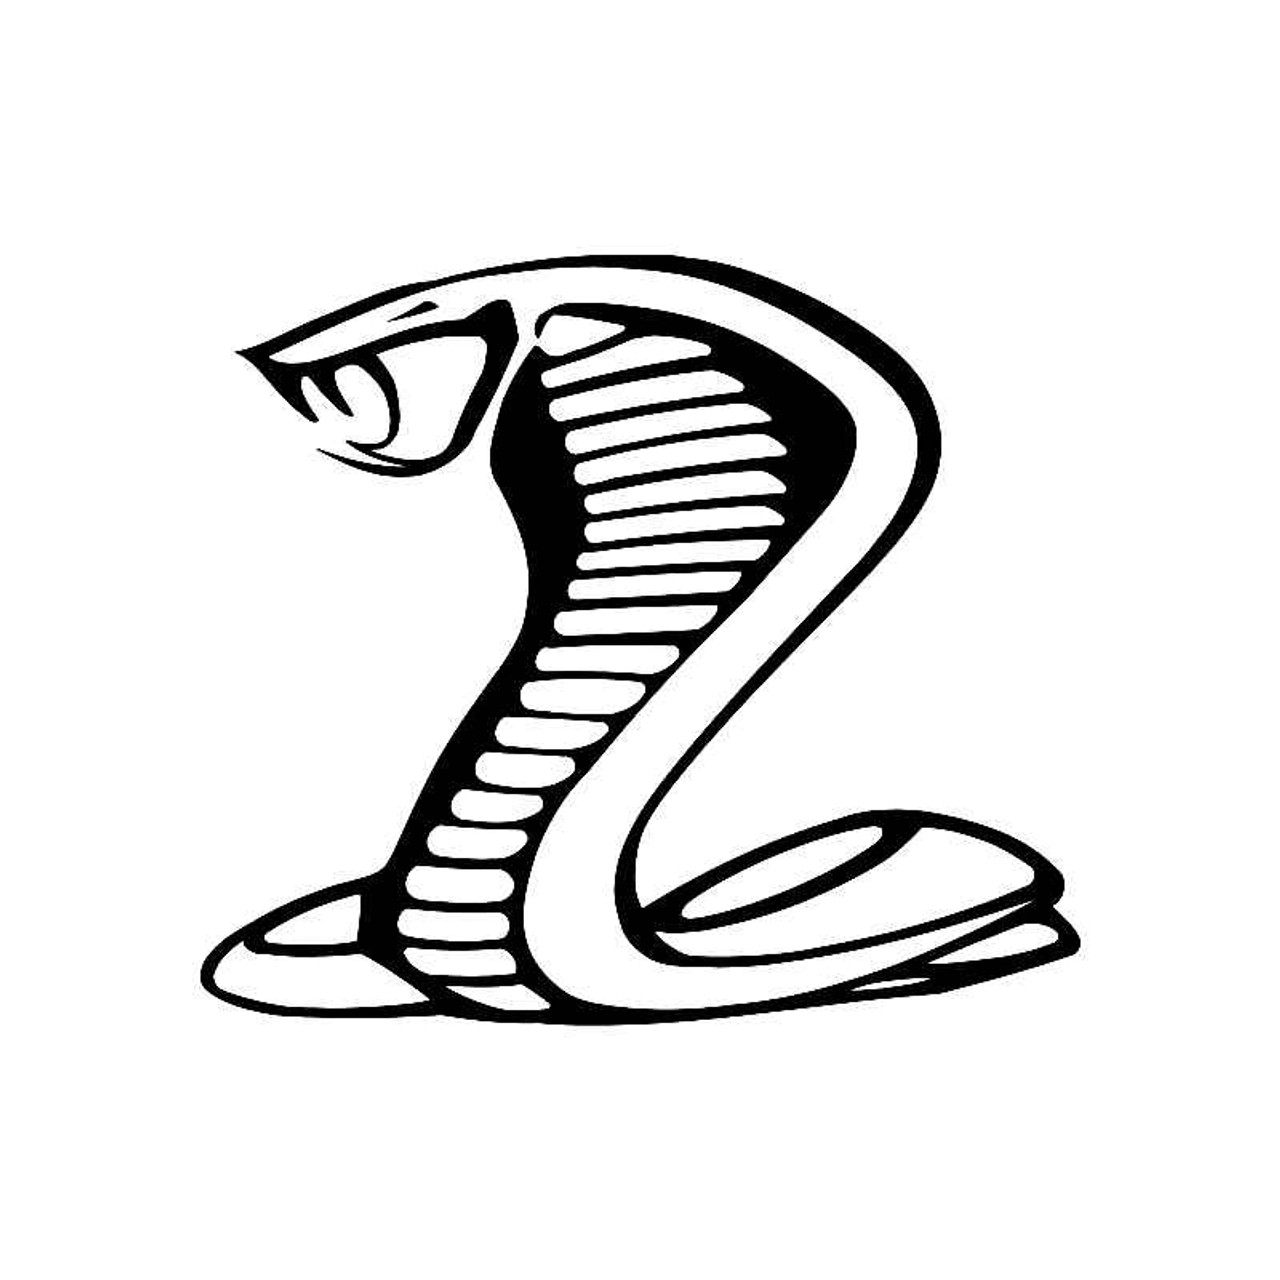 cobra logo jdm decal cobra logo jdm decal